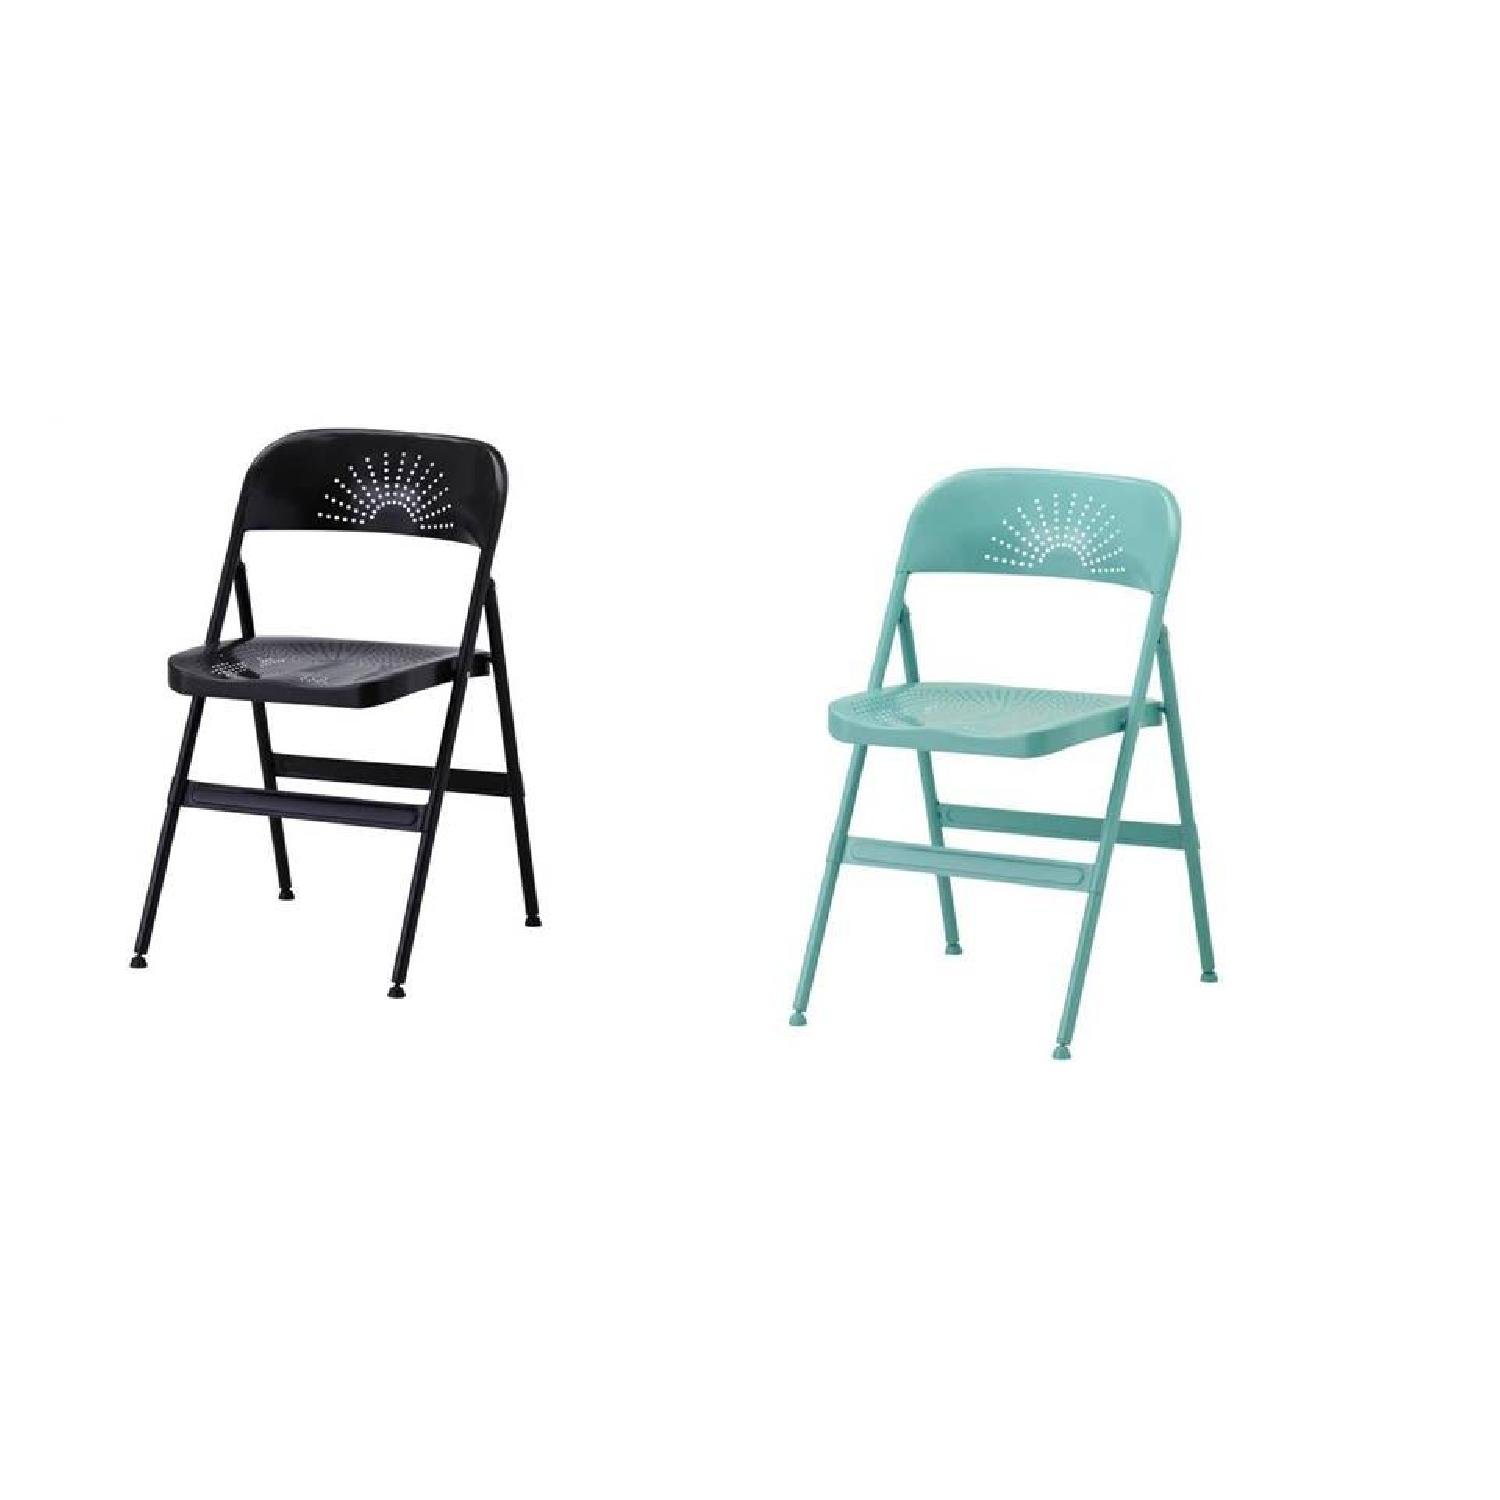 Folding Chair in Dark Grey & Turquoise - image-3